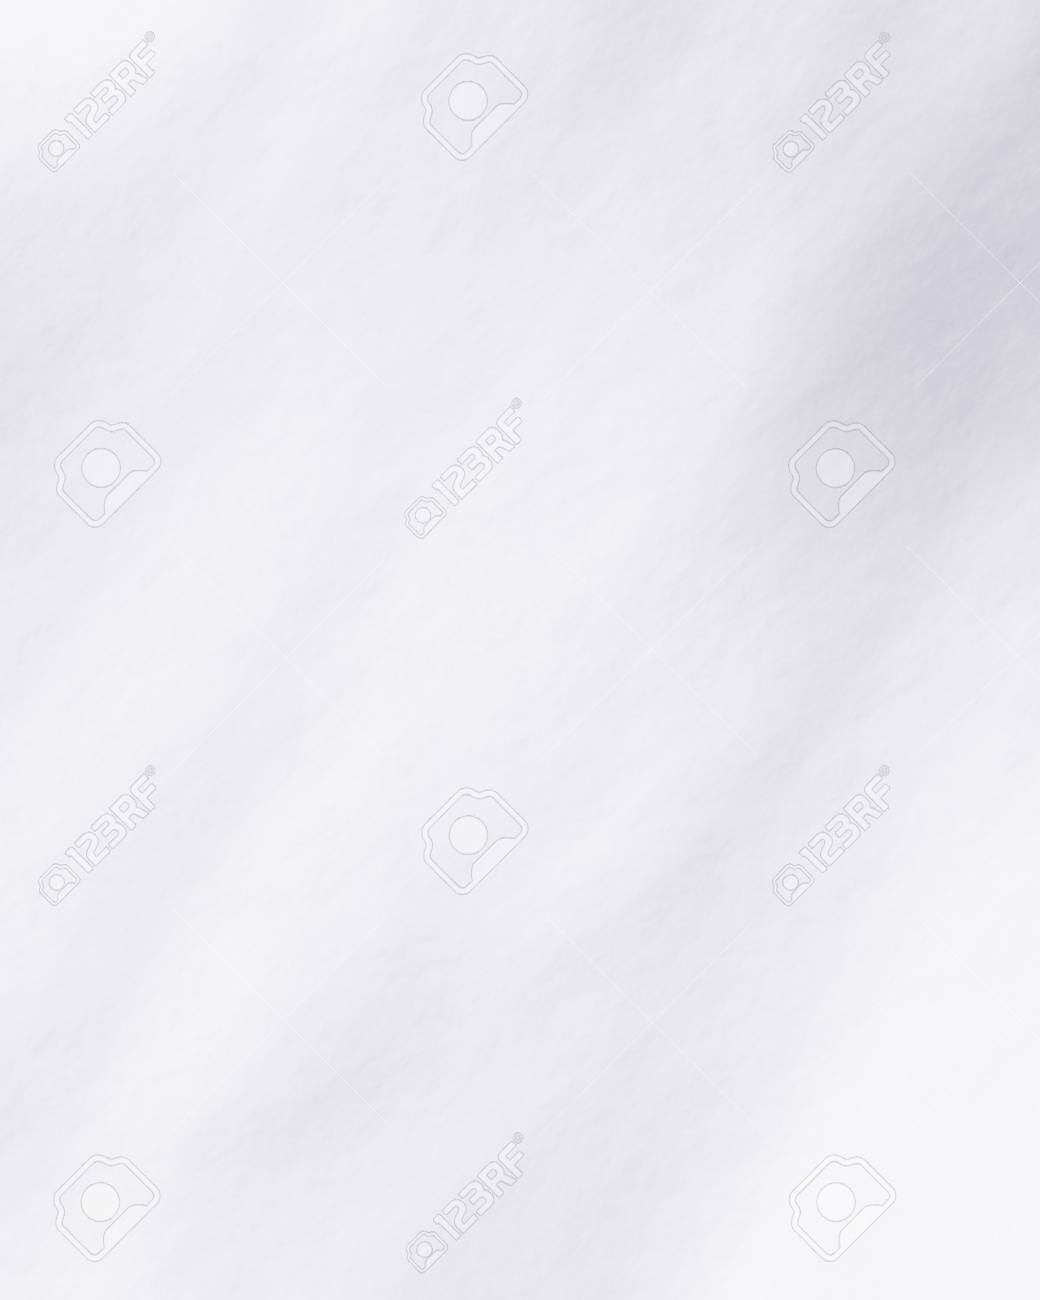 Old paper texture with spots, stains and soft folds Stock Photo - 15612597